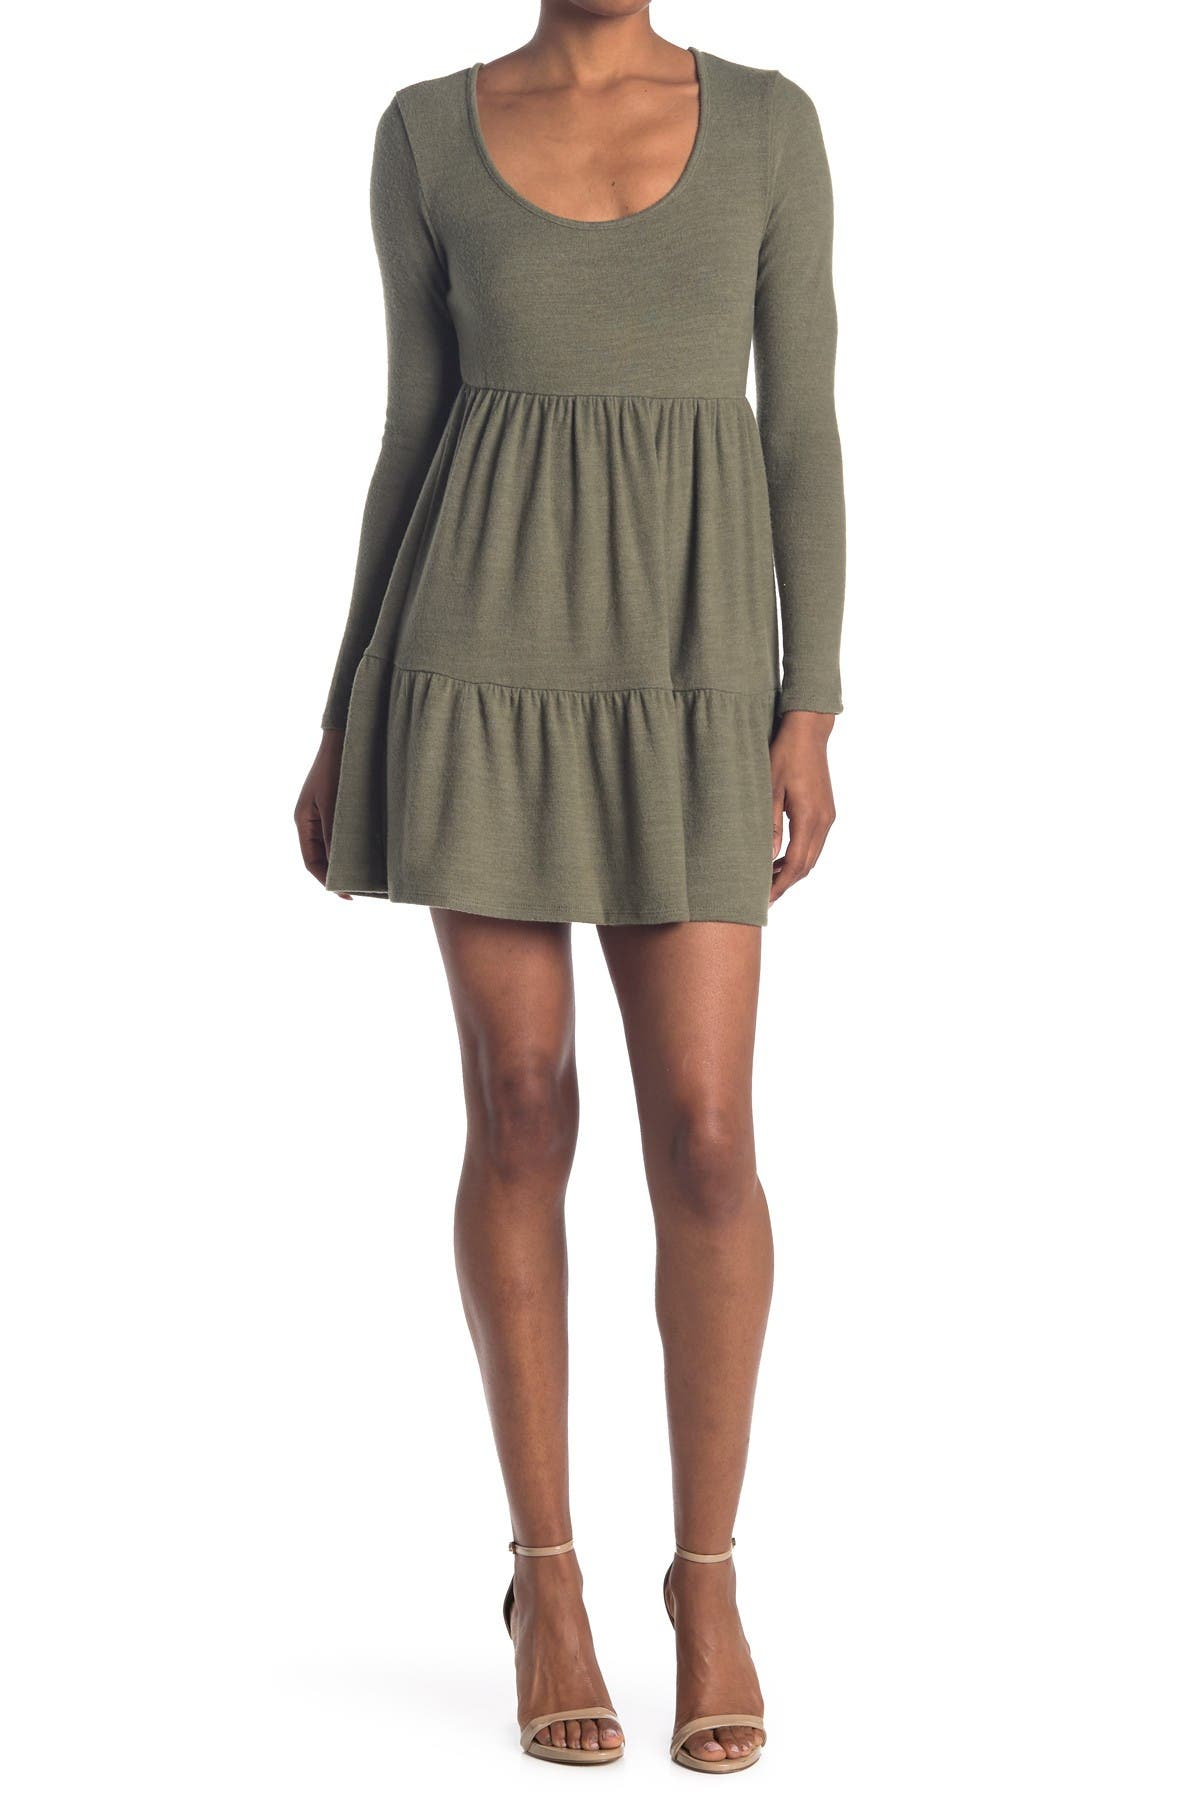 Image of ROW A Scoop Neck Long Sleeve Tiered Mini Dress